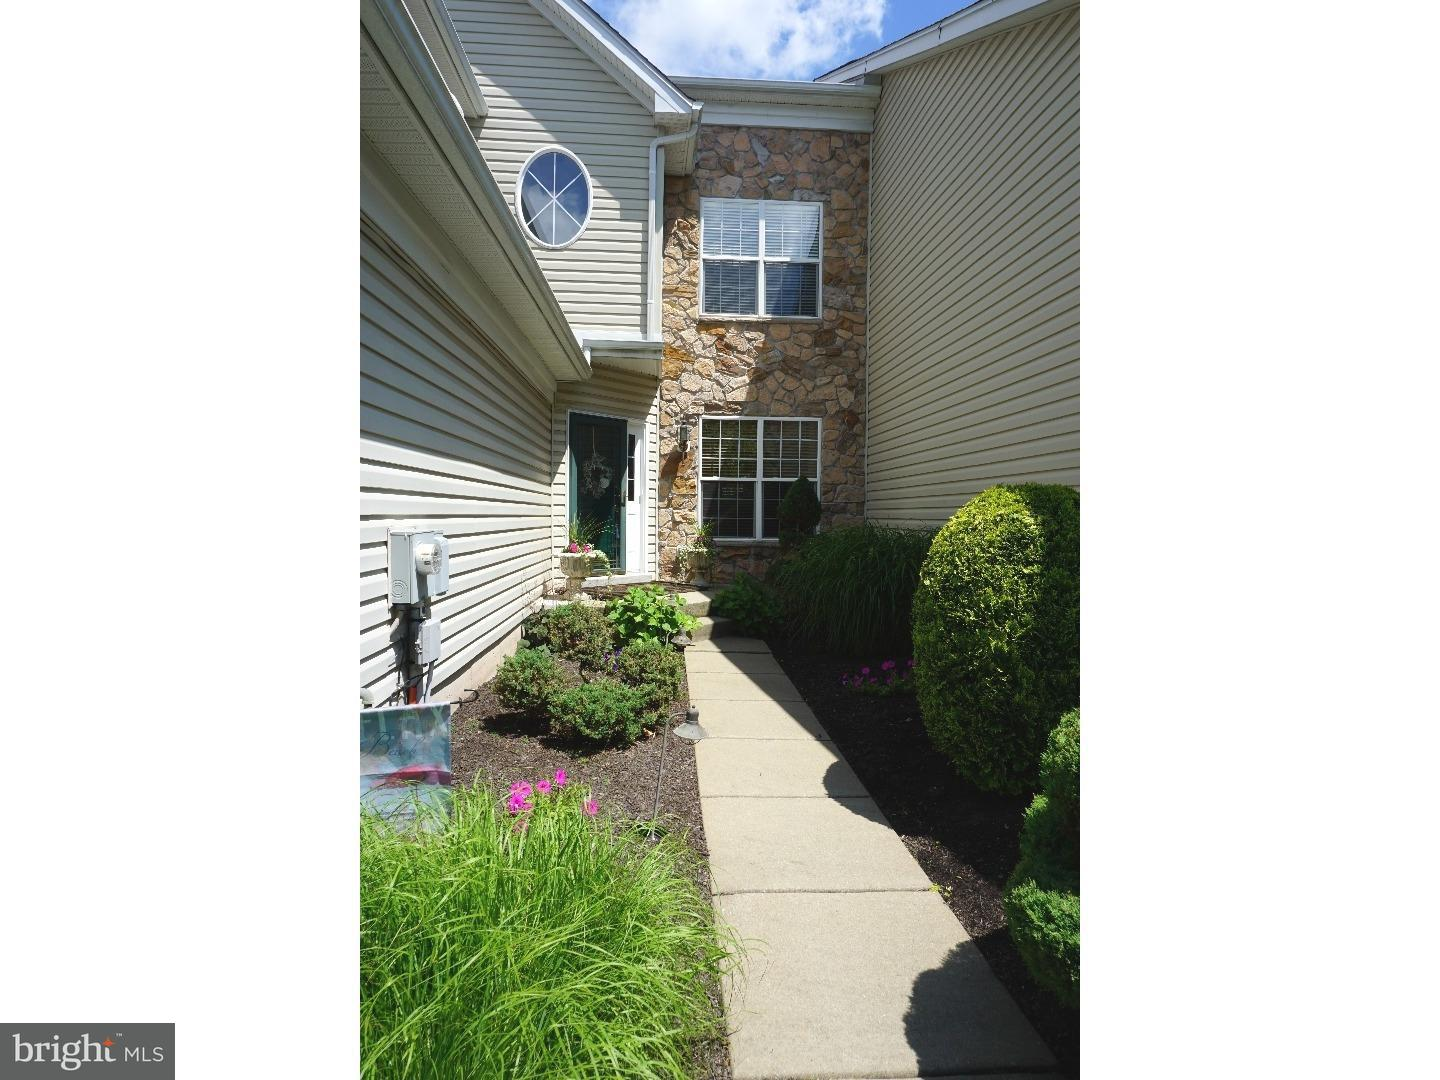 277 Torrey Pine Court West Chester, PA 19380